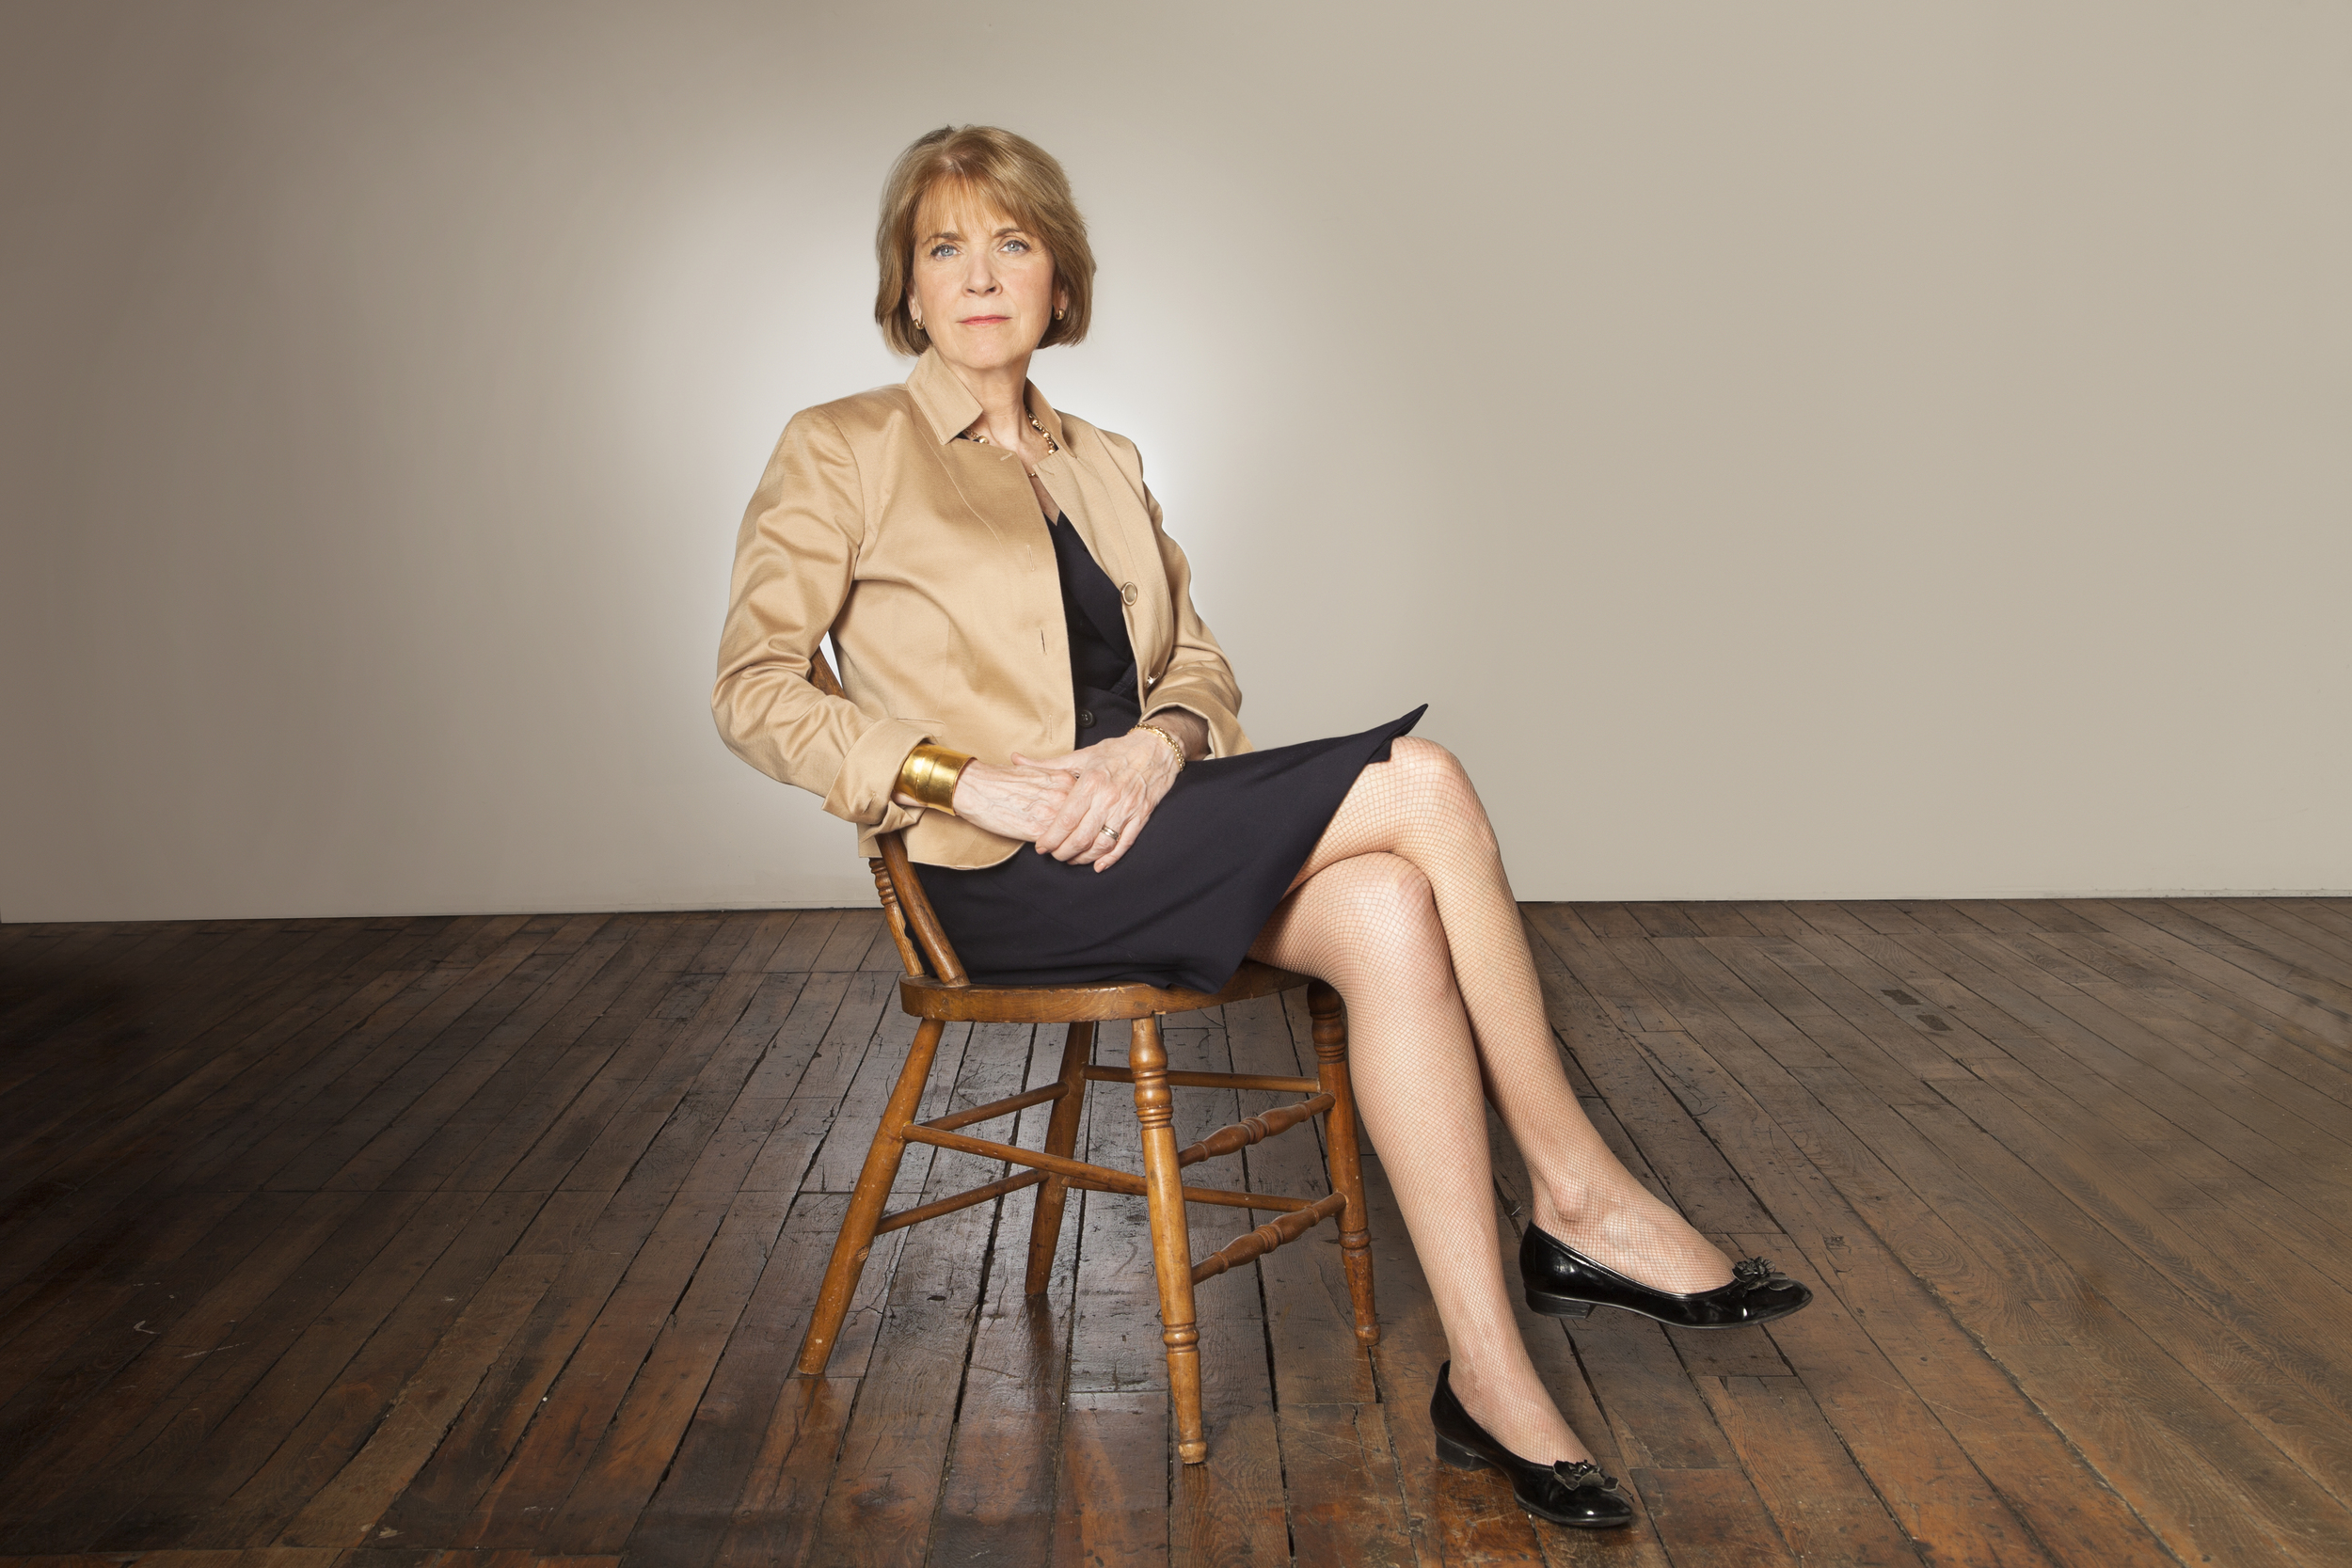 © rogovin.com portrait photography • Martha Coakley